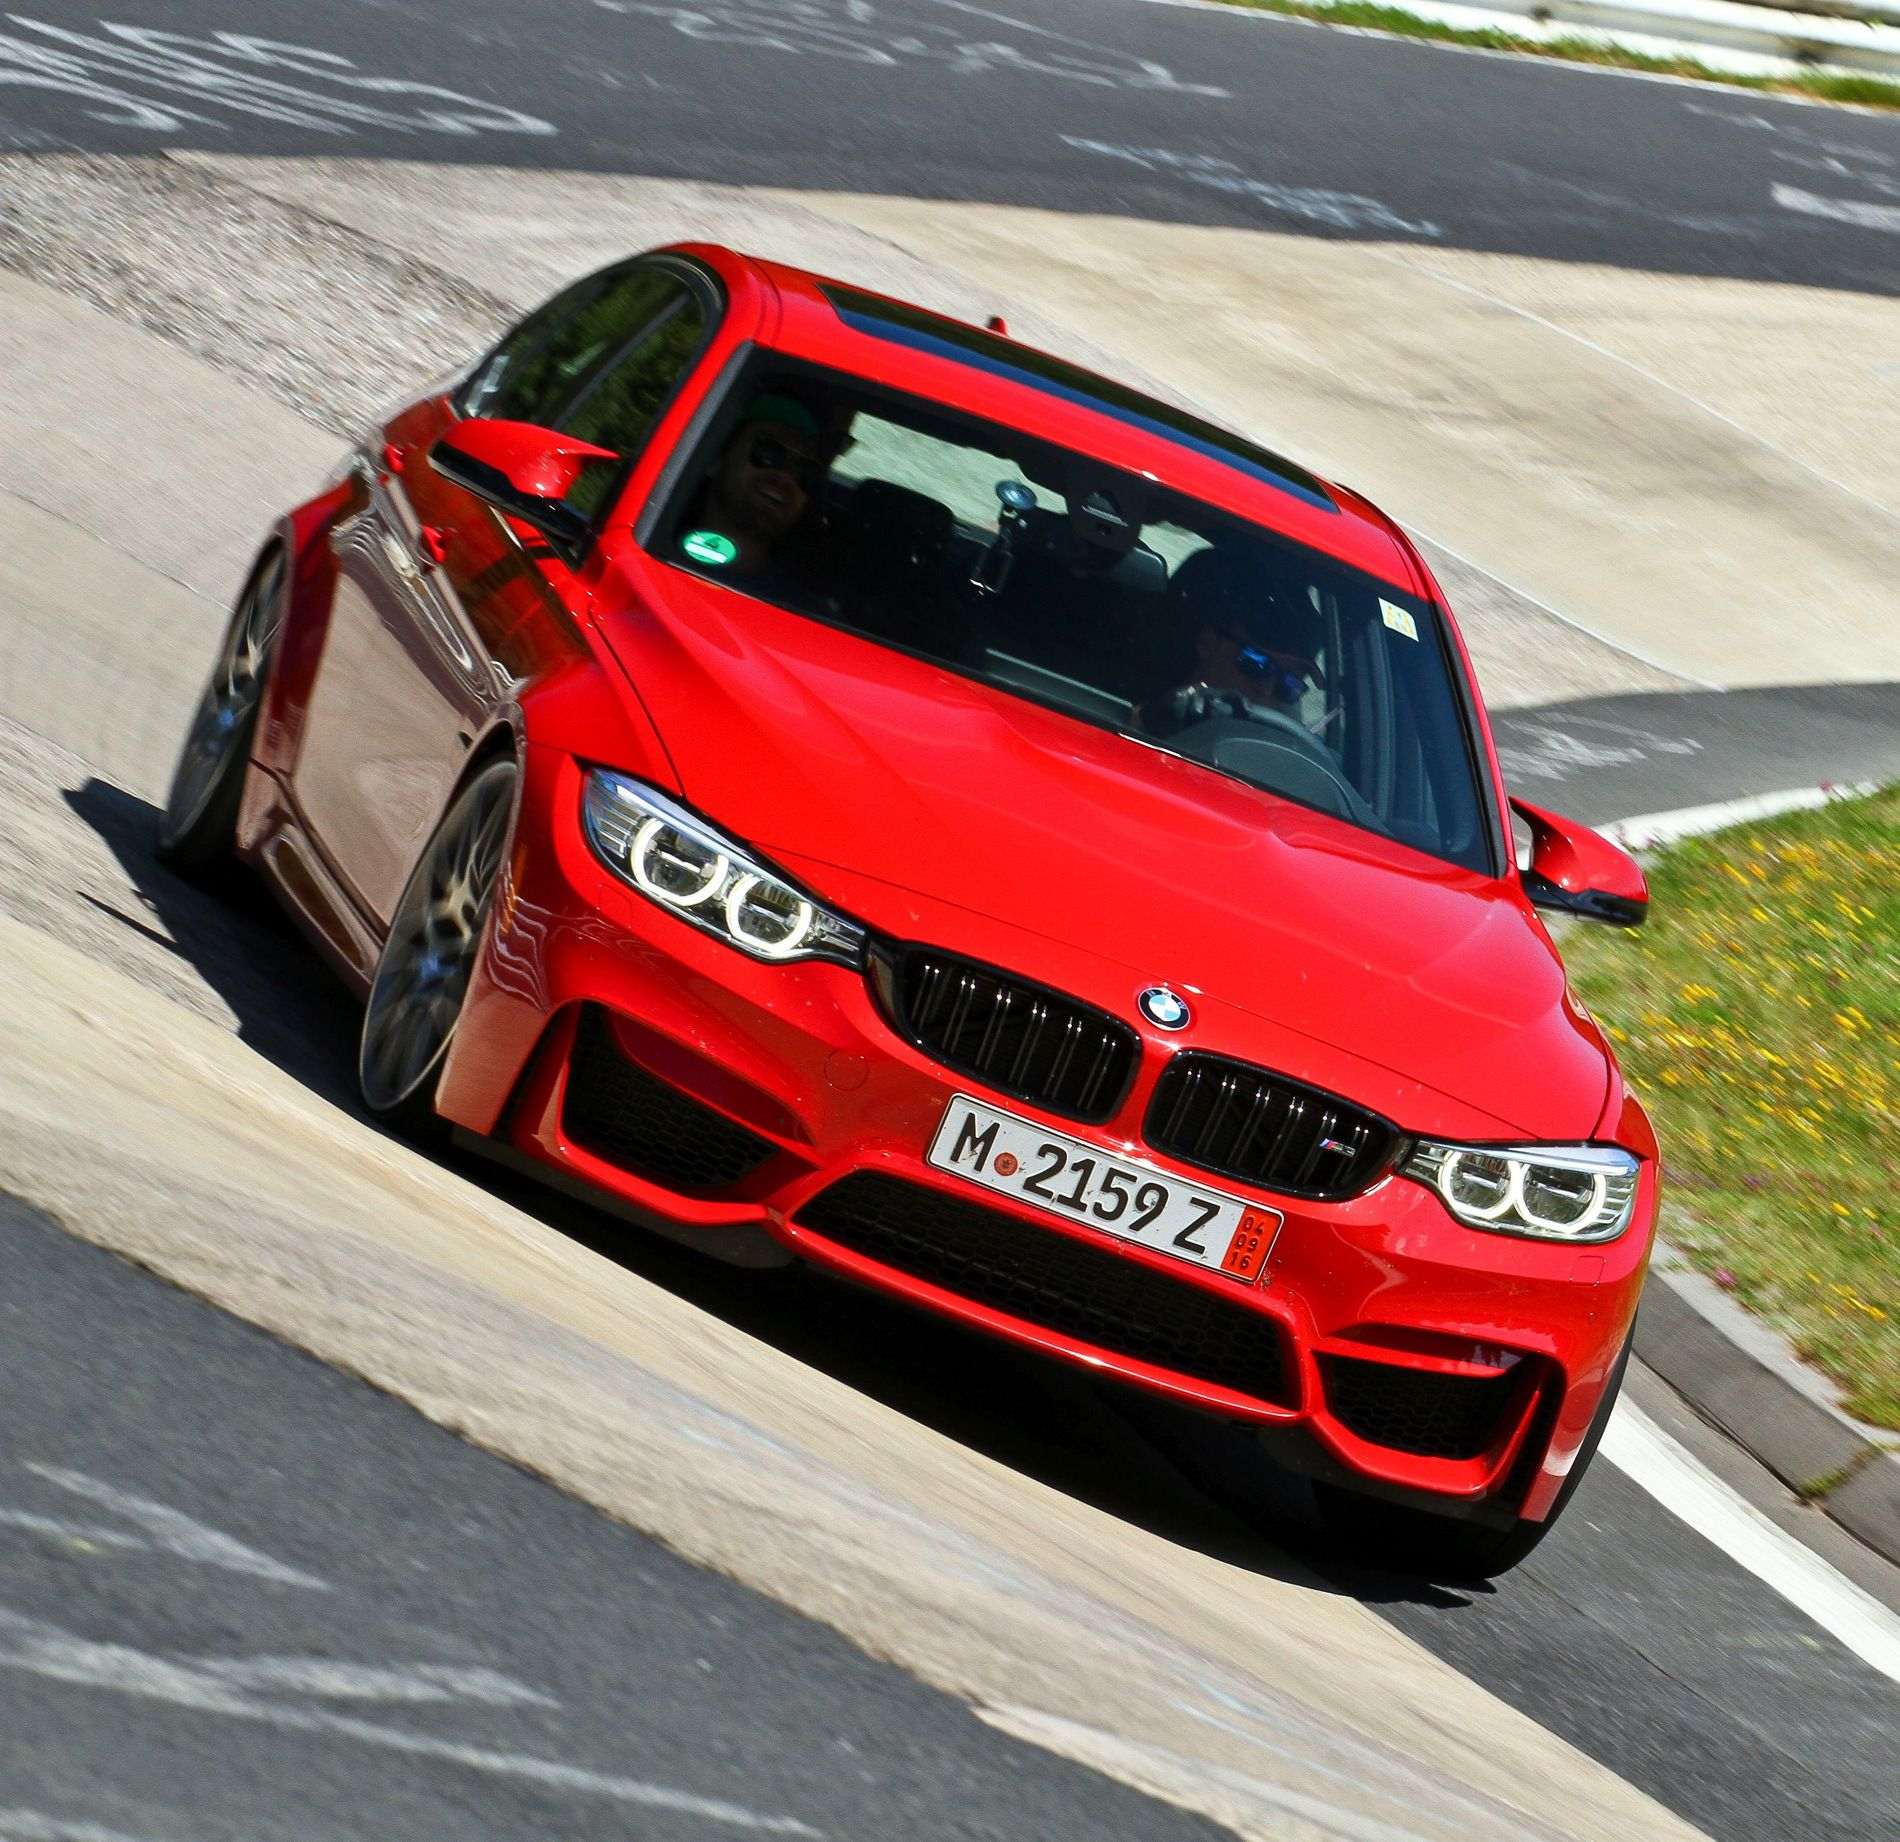 Munich Monsters: Competition Package Vs. Normal M3